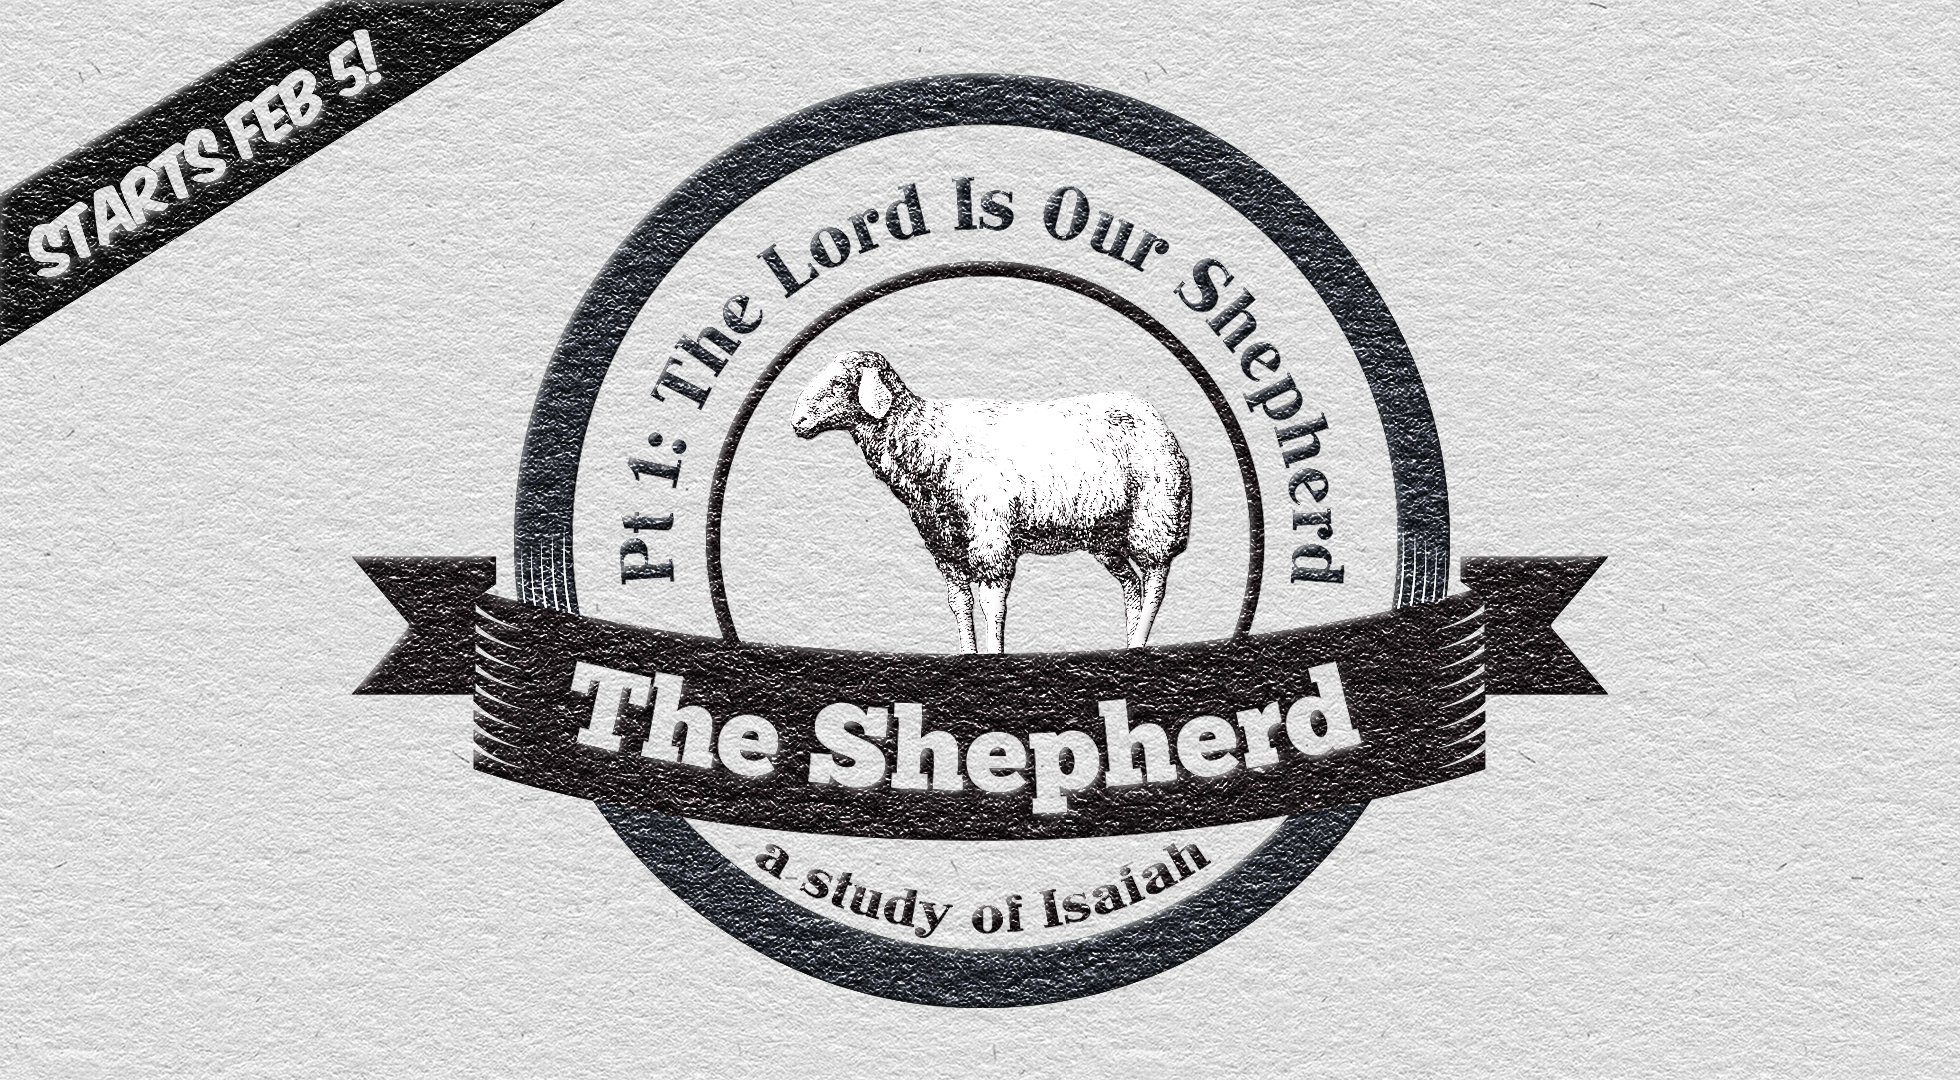 The Shepherd – Part 1